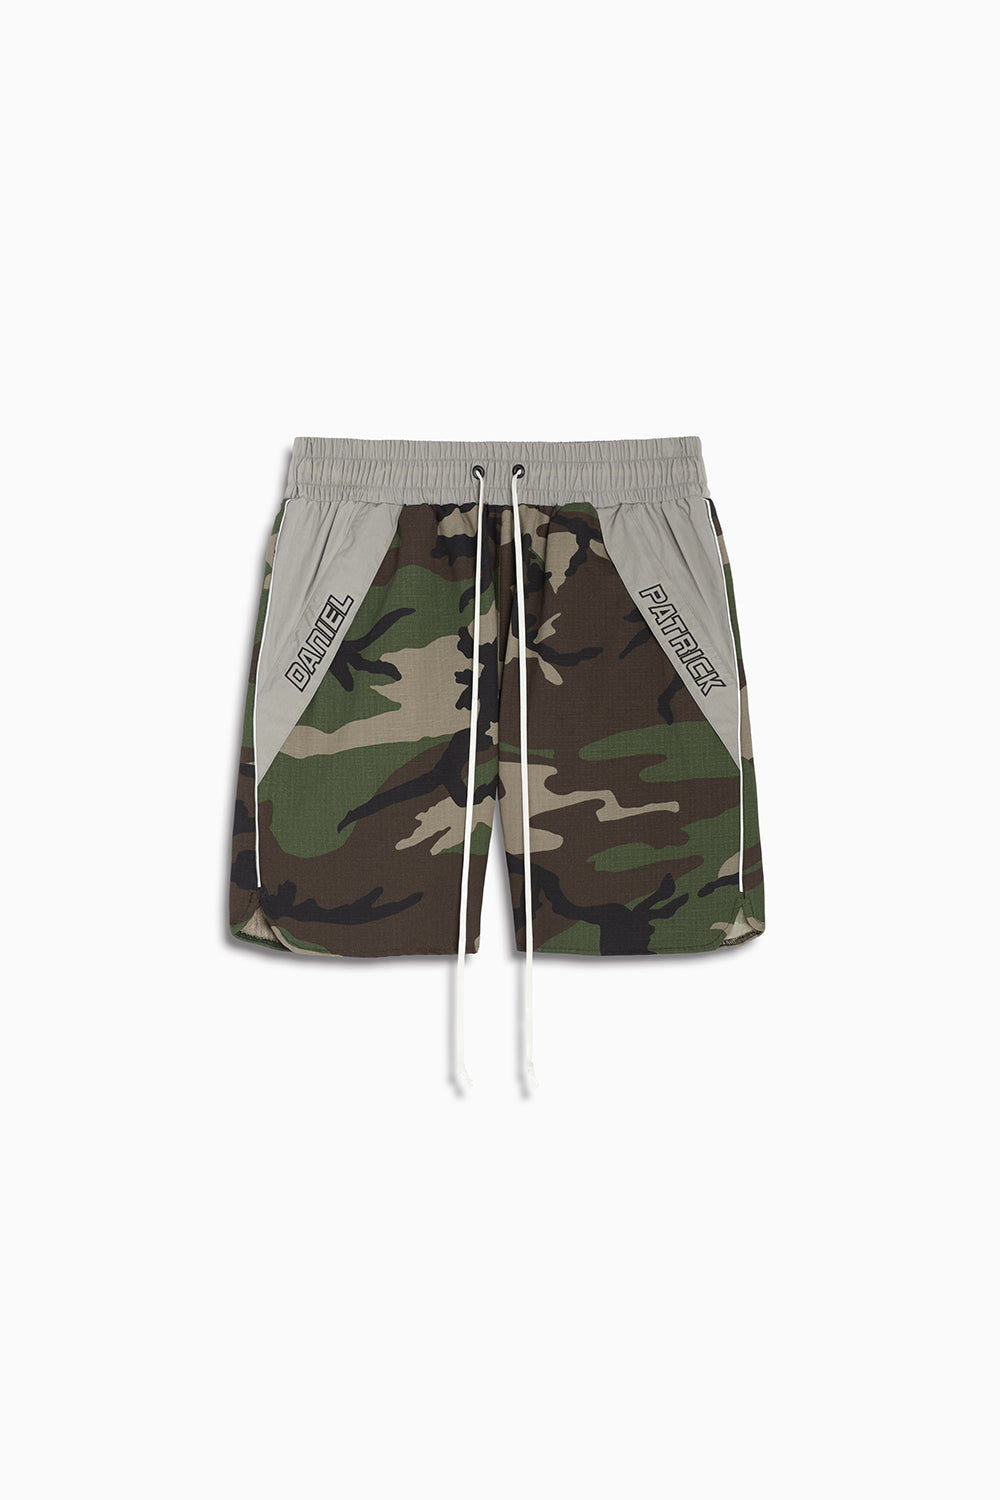 Logo Pocket Gym Short / camo + 3m + smog grey